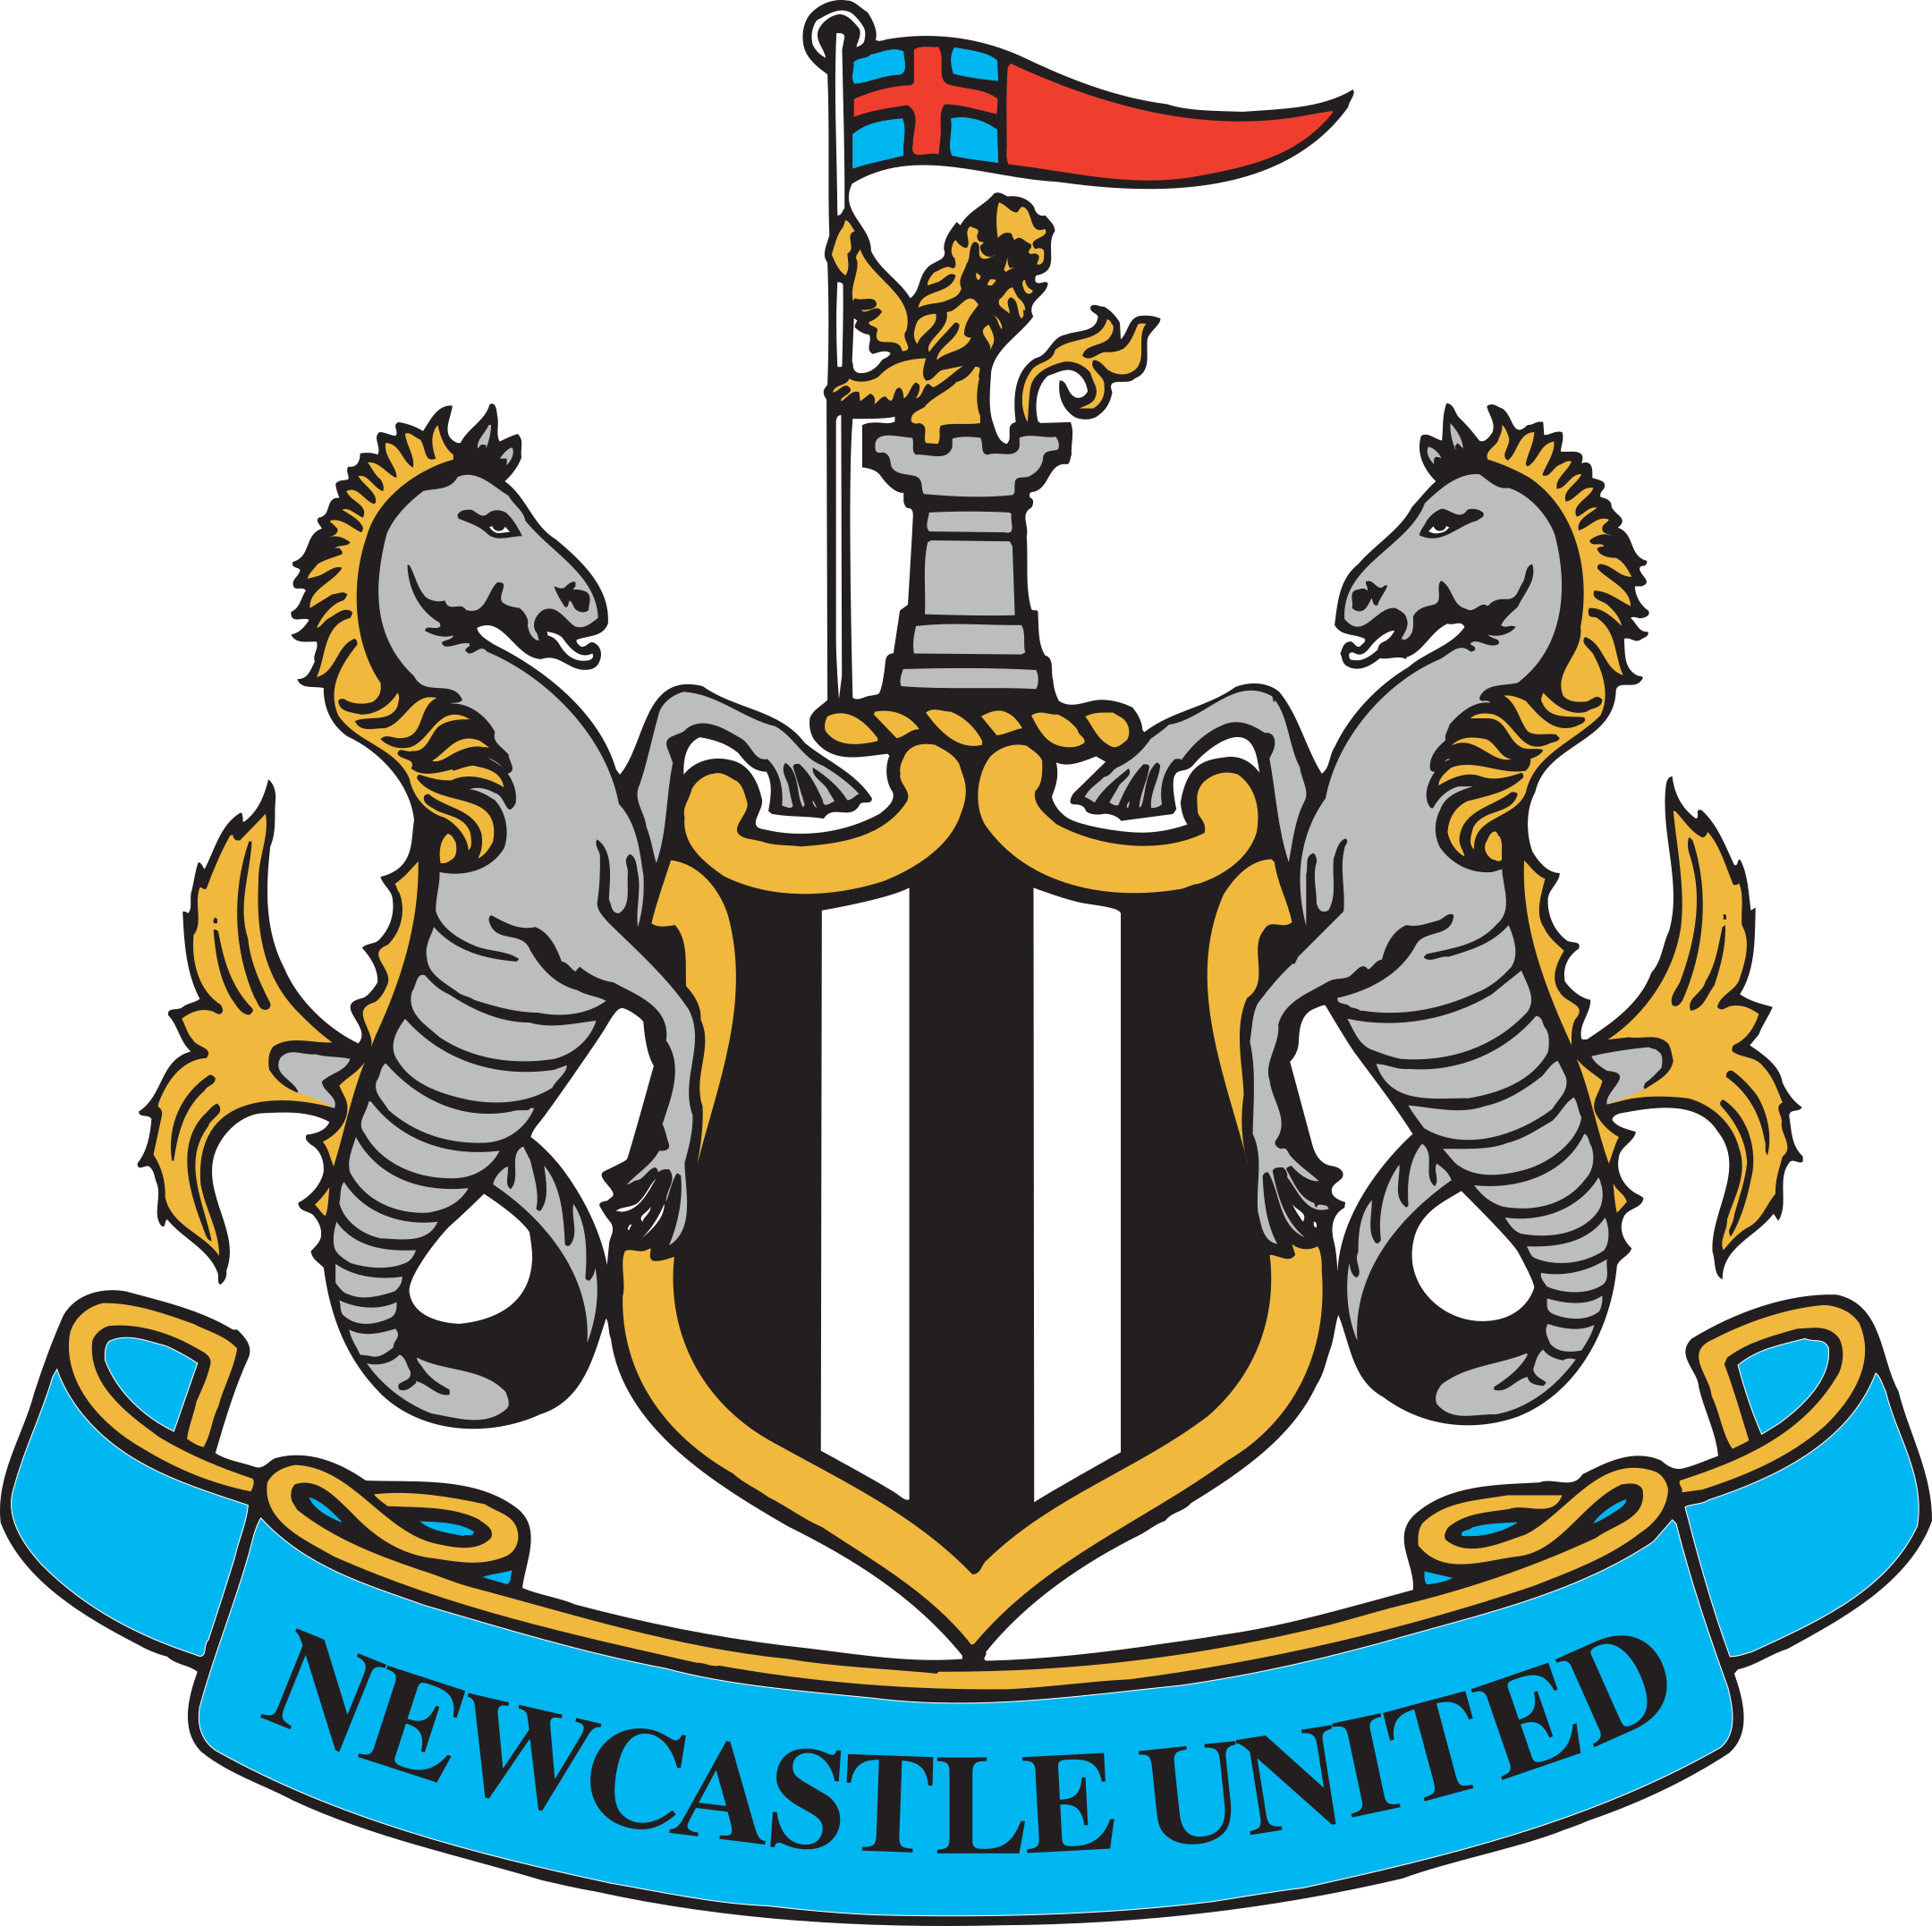 newcastle united logo 1 - Newcastle United FC Logo